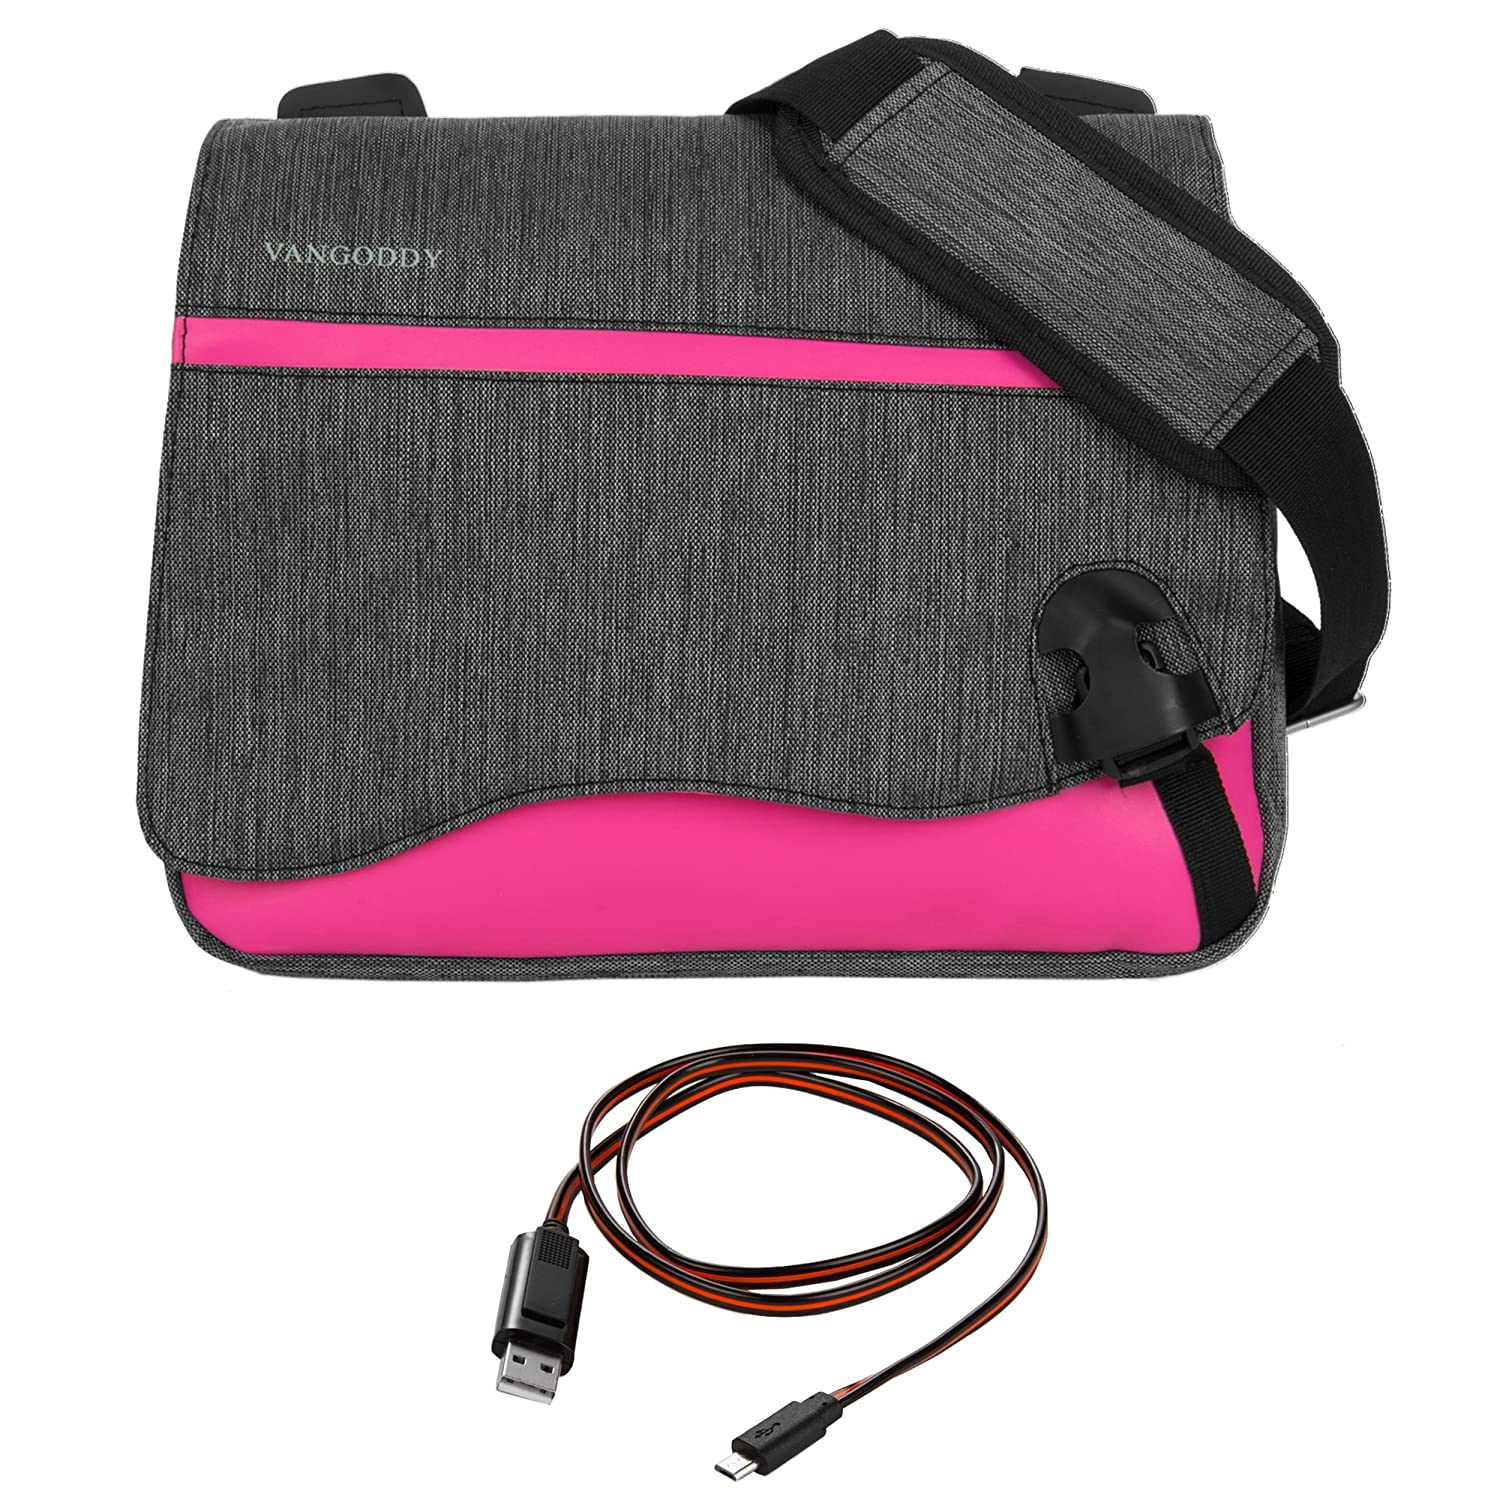 8d81bd0a12a8 Amazon.com  Micro USB Cable + Vangoddy 10 Inch Messenger Shoulder Bag  Satchel Sling Bag (Magenta) for Acer Iconia One 10 Tab 10 SWitch One 10  Series 10.1